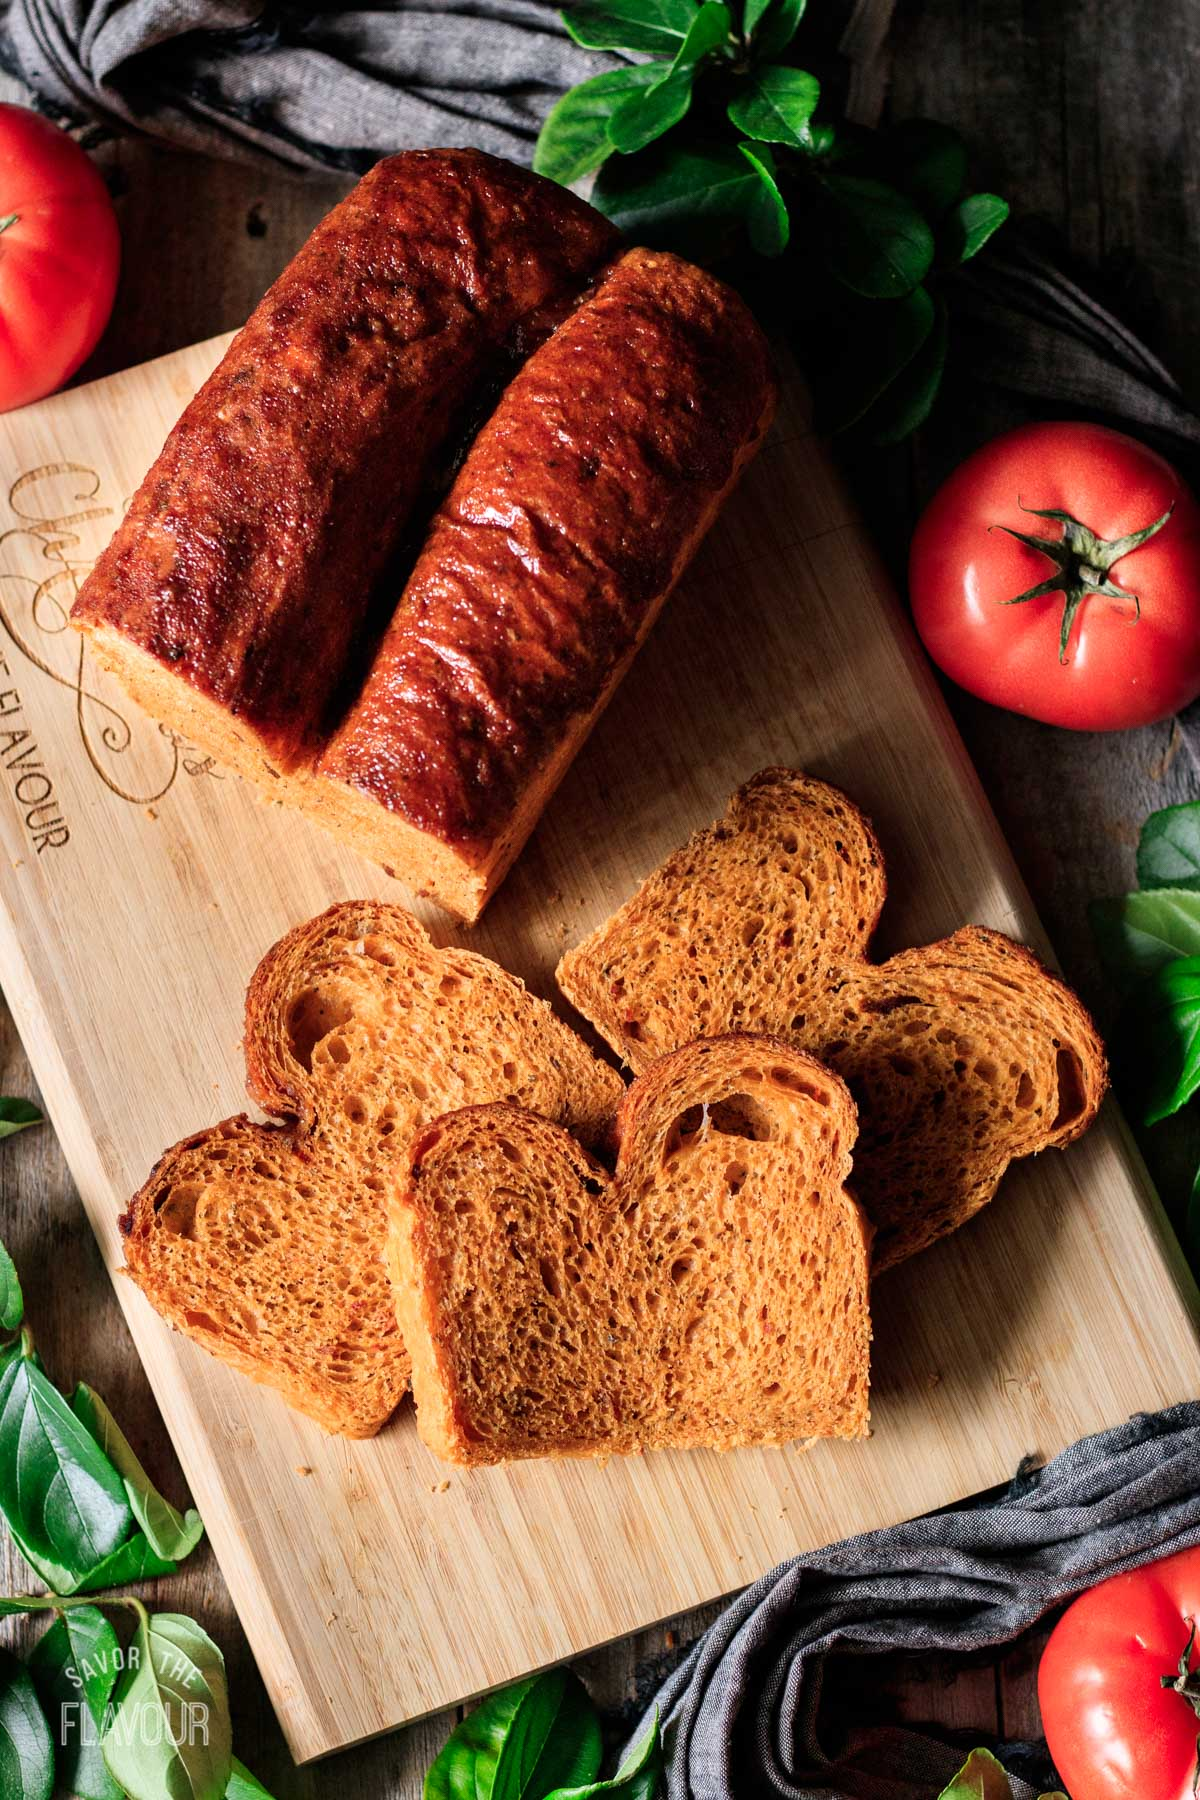 slices of tomato basil bread on a cutting board with the loaf